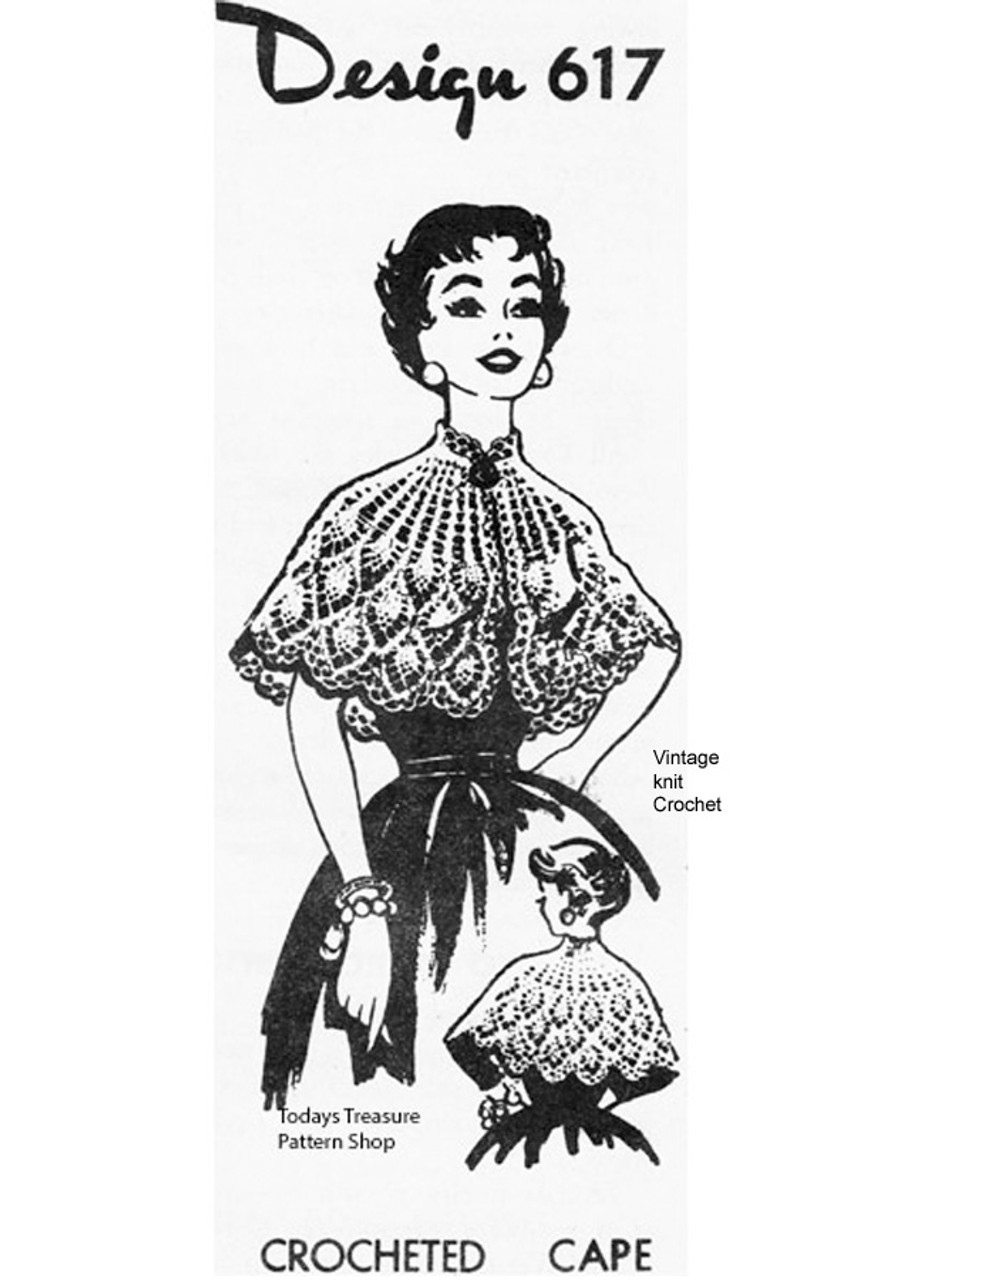 Crochet Pineapple Capelet Pattern Mail Order 617